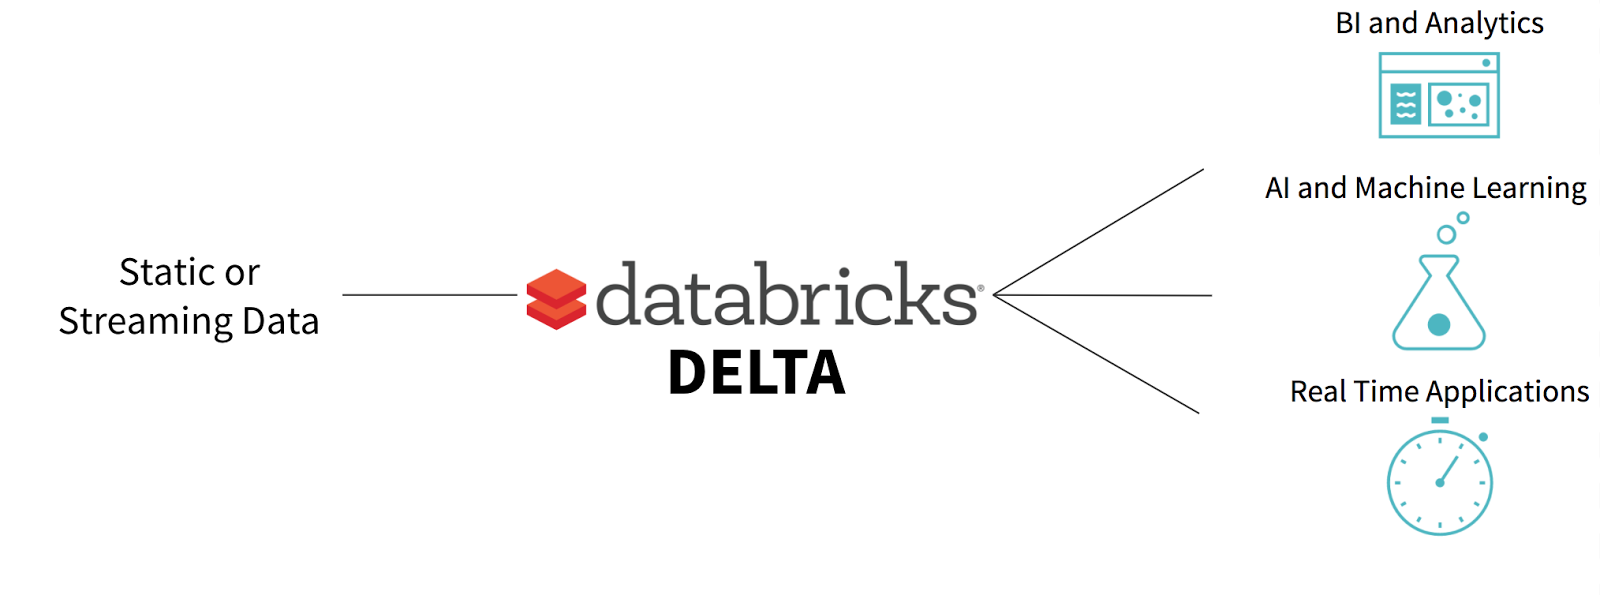 A Unified Data Management System for Real-time Big Data. Image credits Databricks.